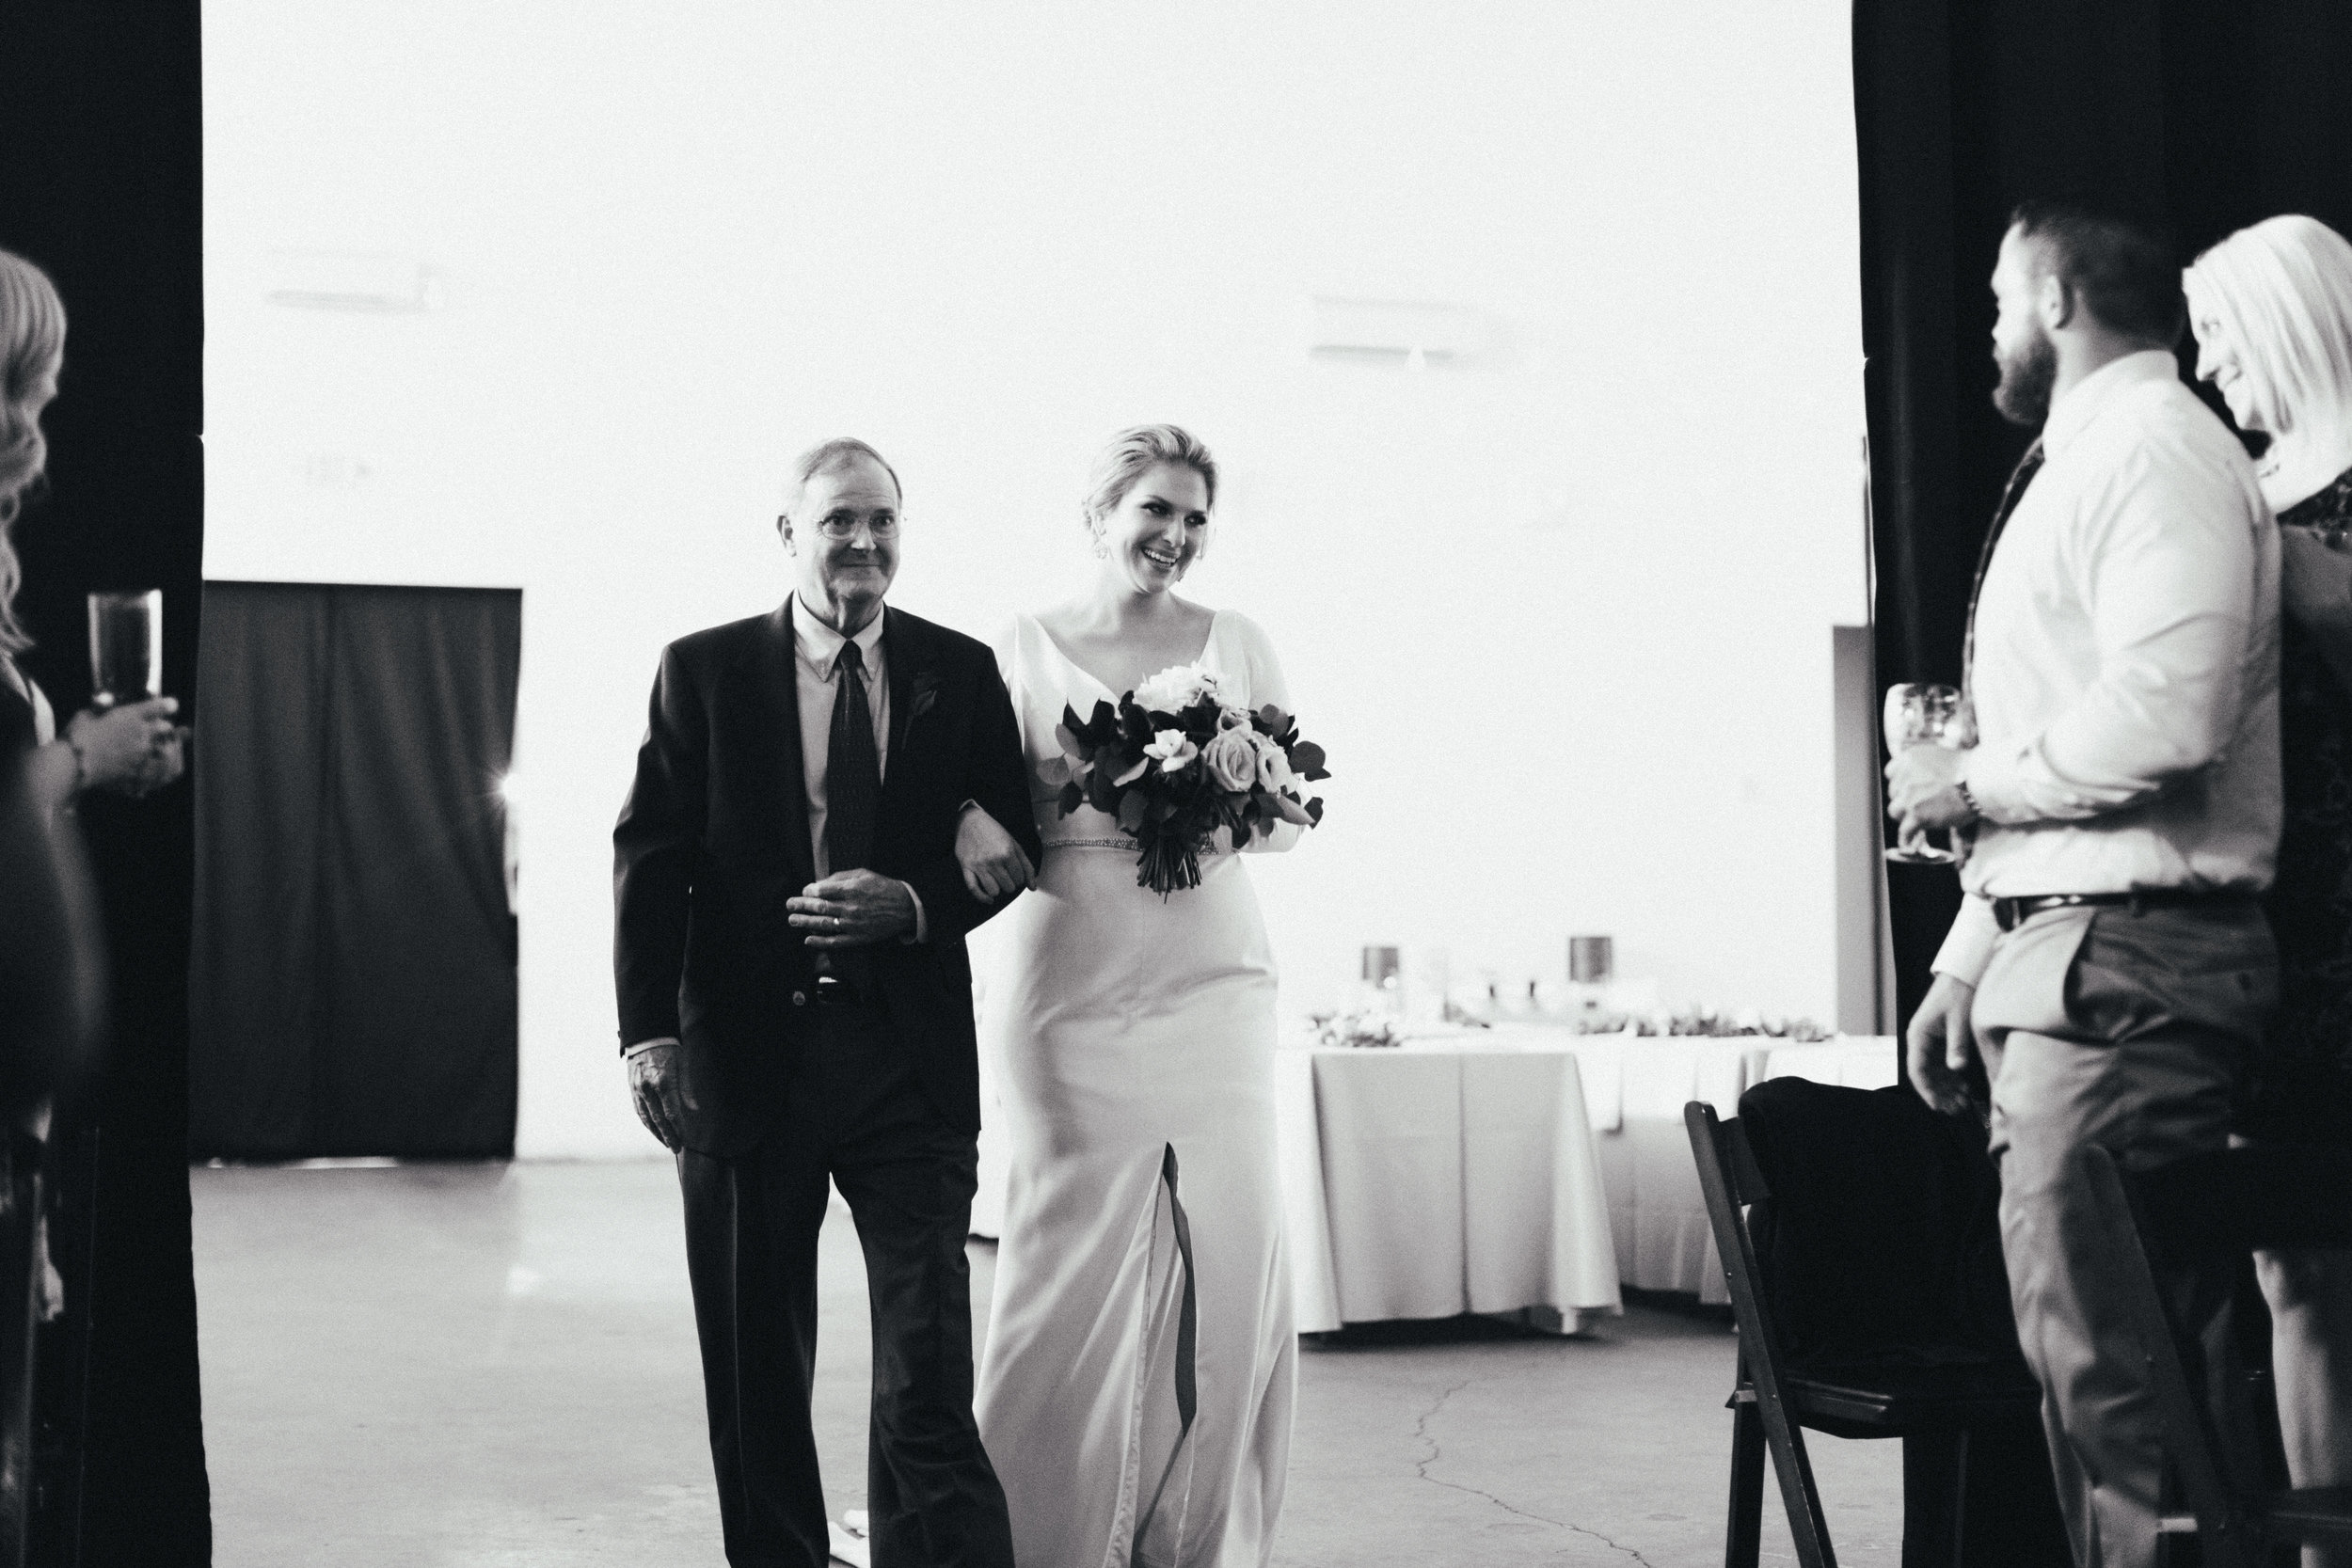 Mike & Heather - Ceremony - Jake & Katie Photography_047.jpg